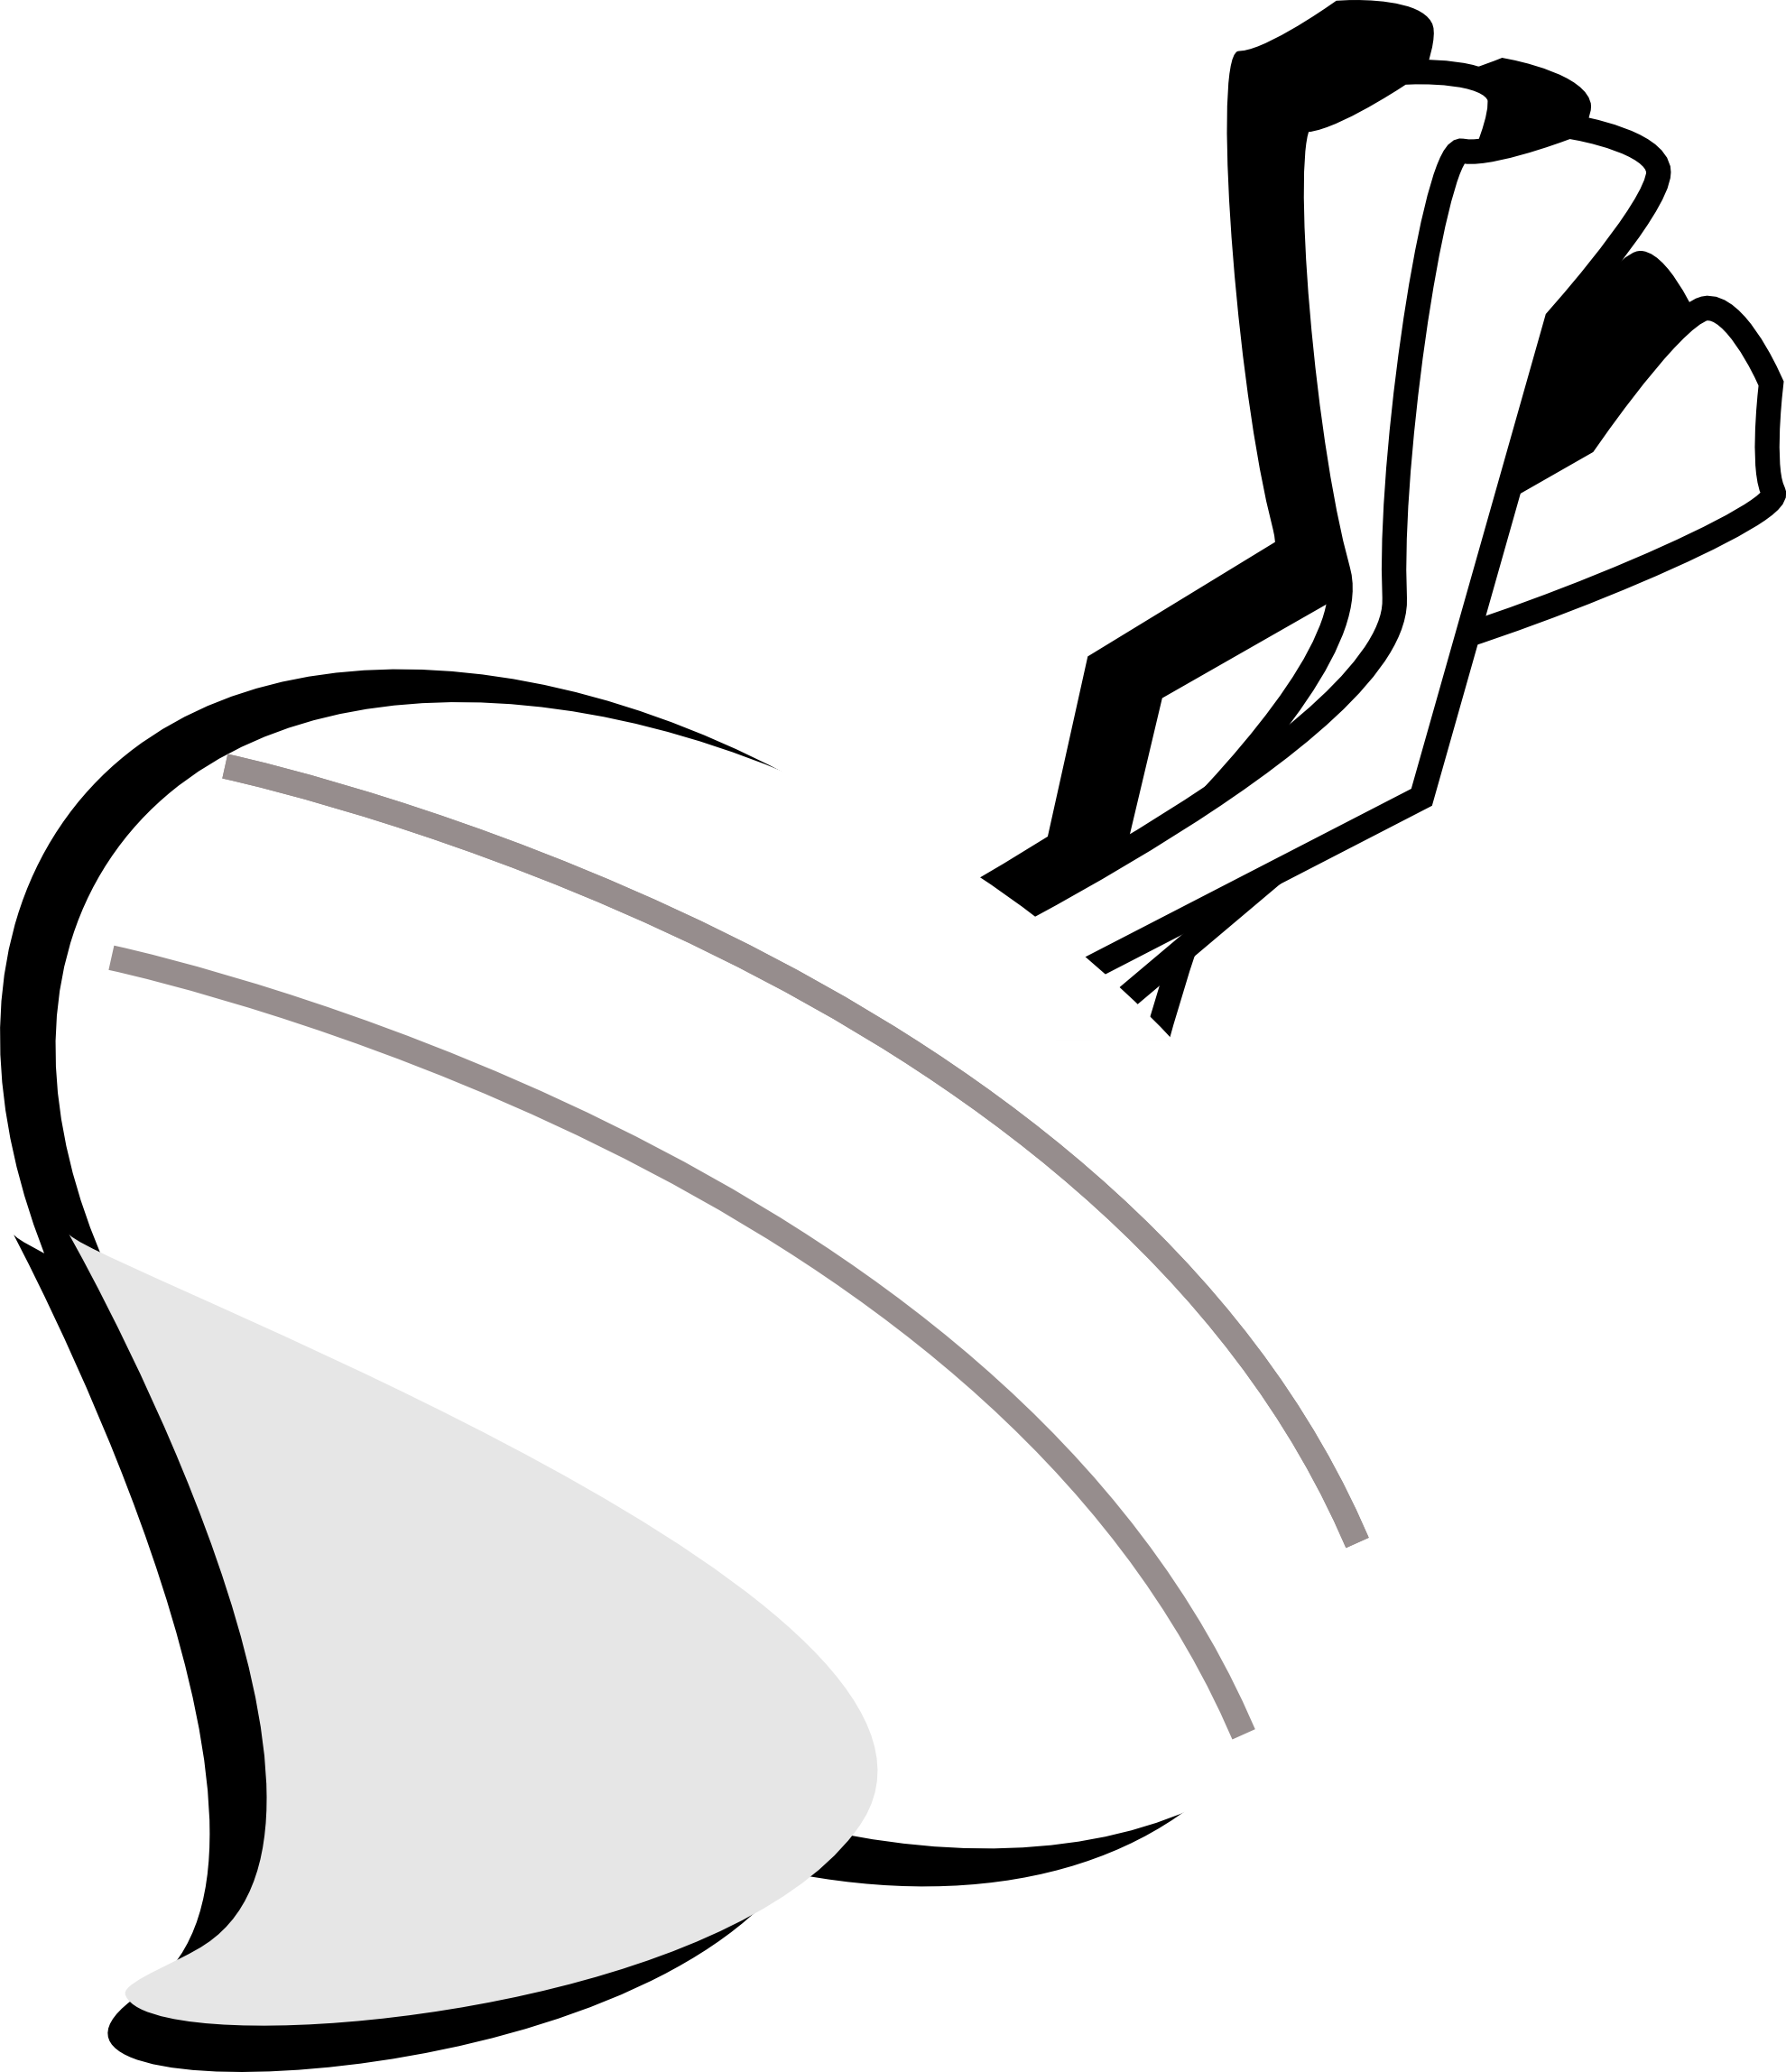 Line drawings google search. Vegetables clipart turnip